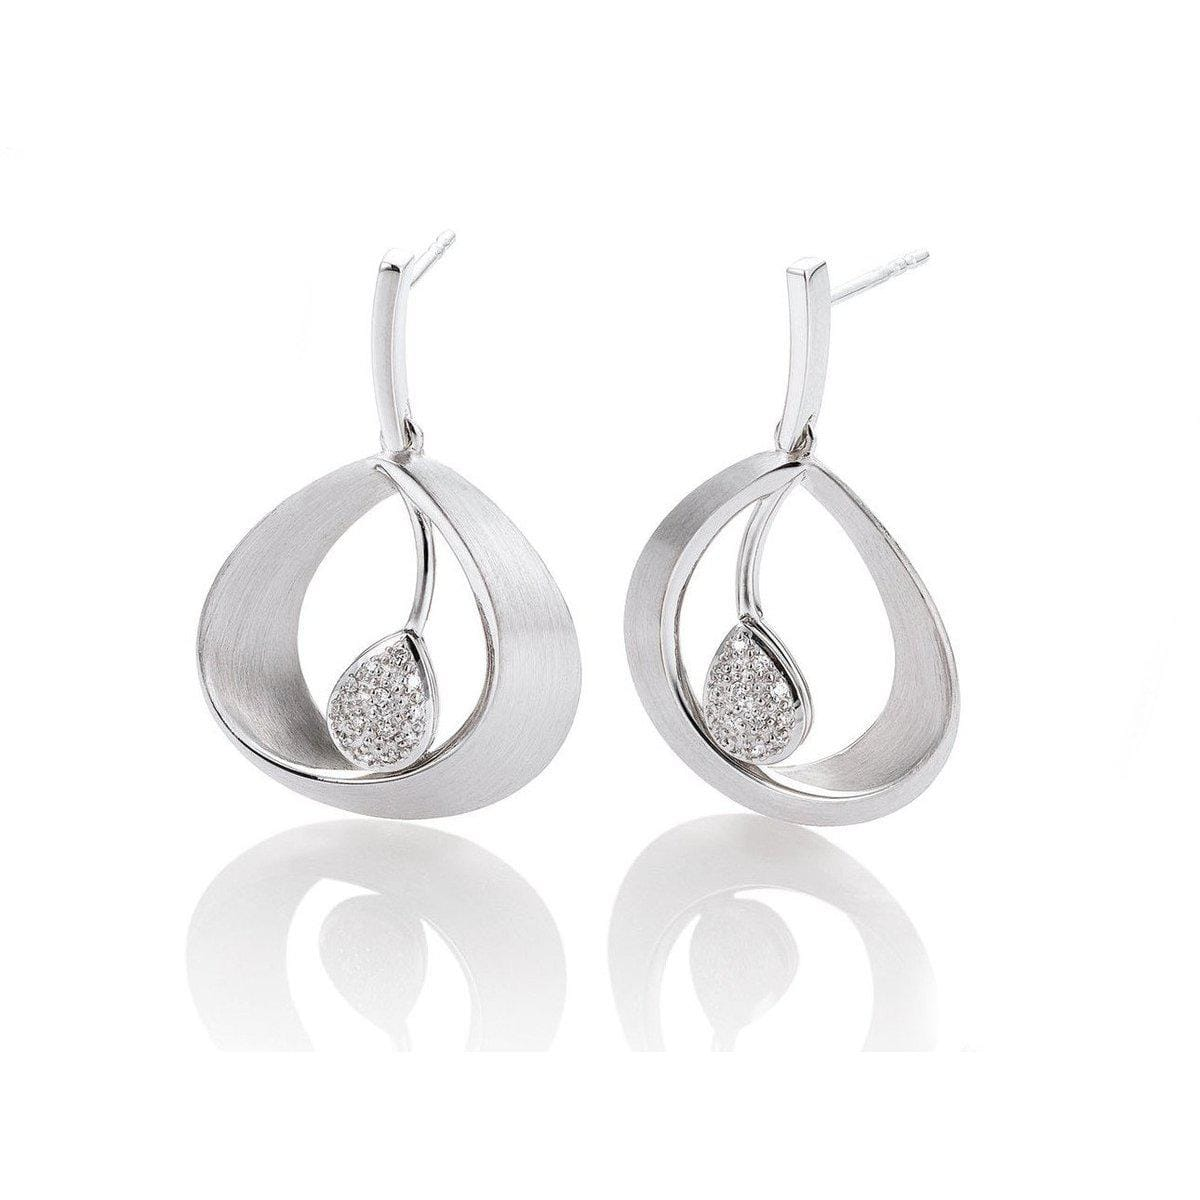 Rhodium Plated Sterling Silver Diamond Earrings - 11/03014-Breuning-Renee Taylor Gallery